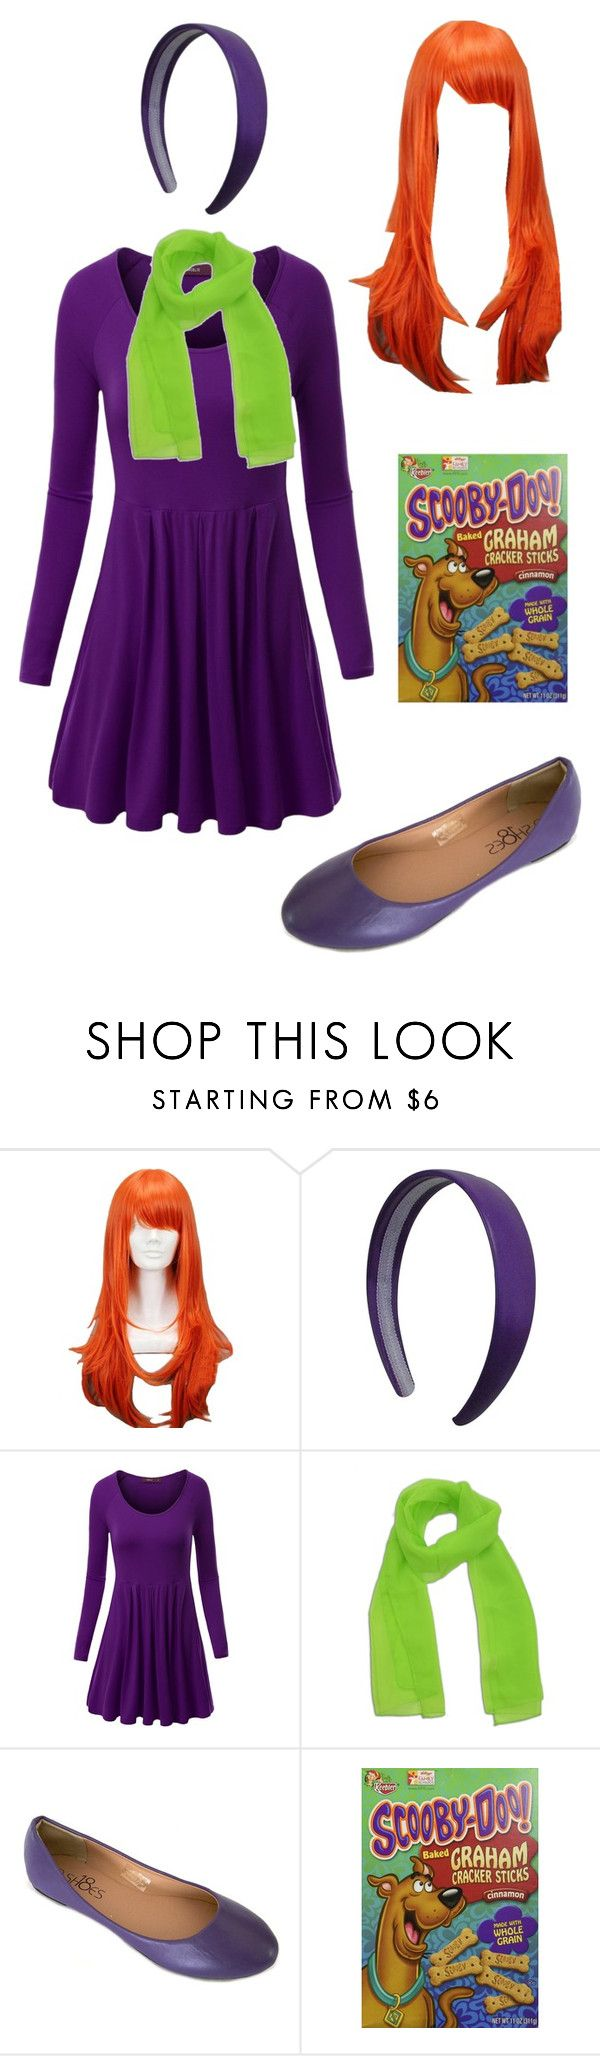 Best 25+ Daphne costume ideas on Pinterest | Daphne from scooby ...